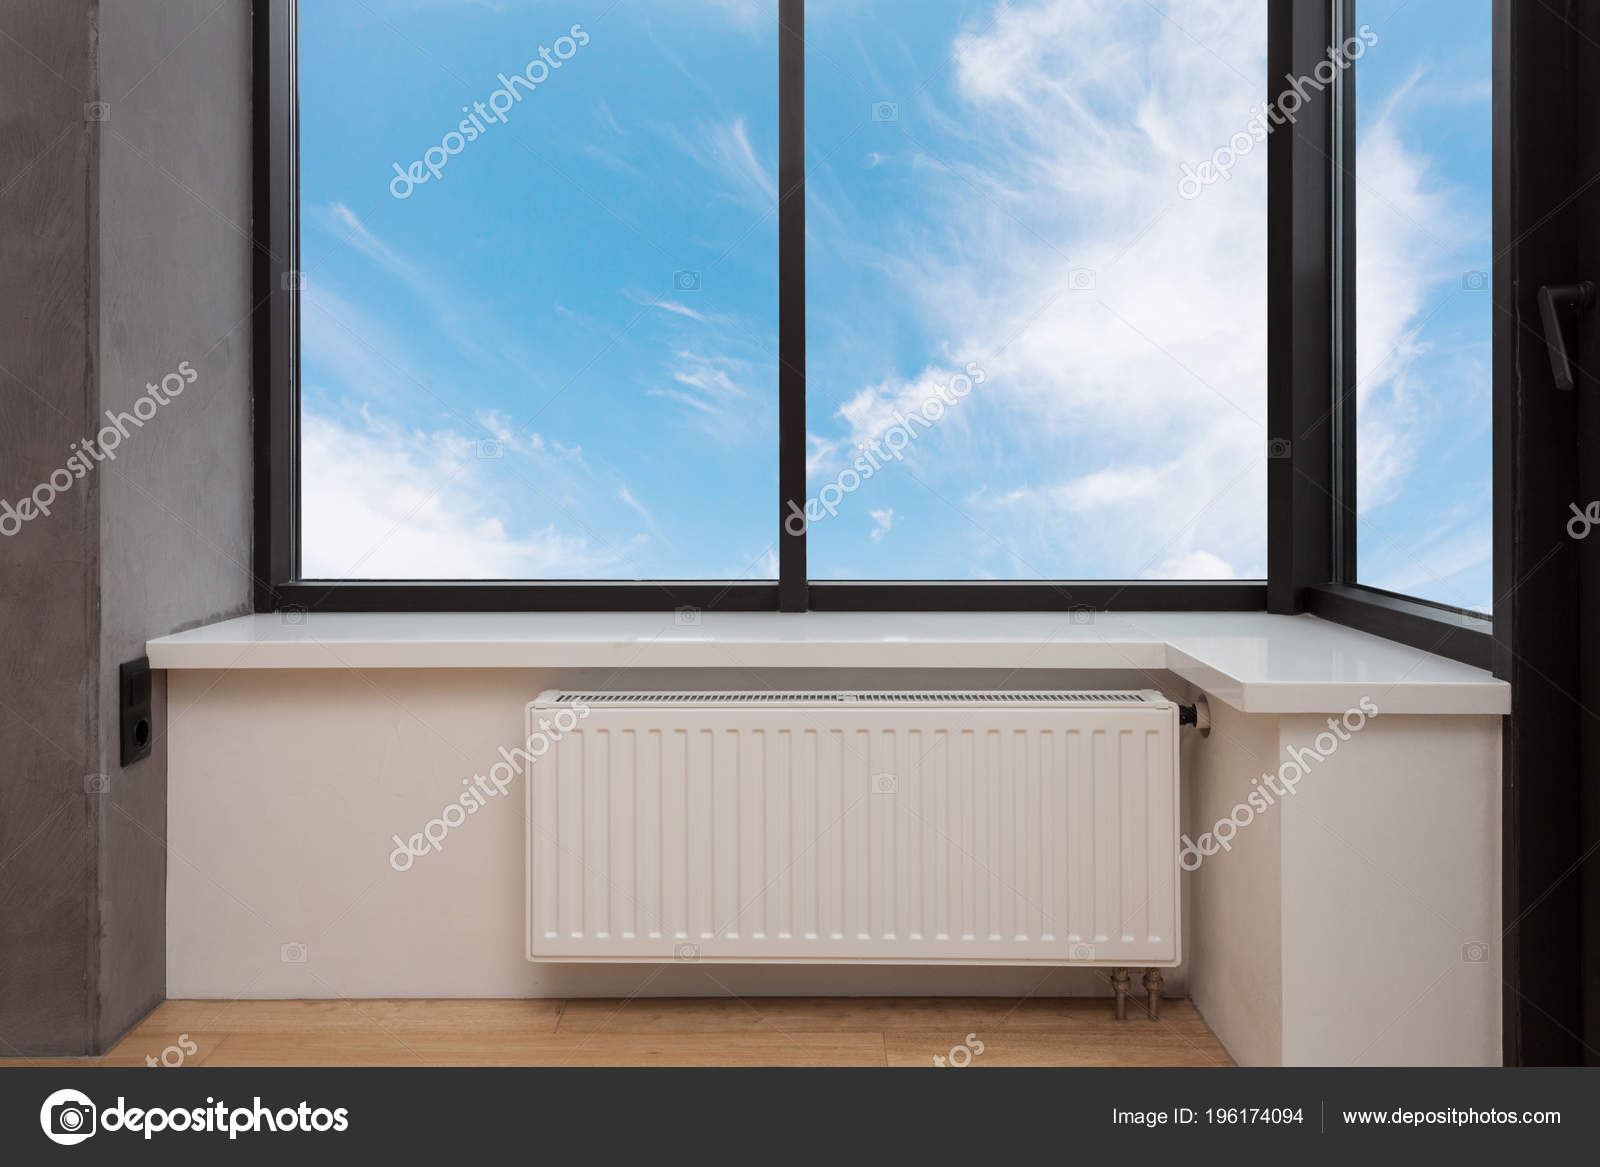 Full Size of Heating White Radiator With Adjuster Of Warming In Living Room Under A Large Window. Wohnzimmer Heizkörper Wohnzimmer